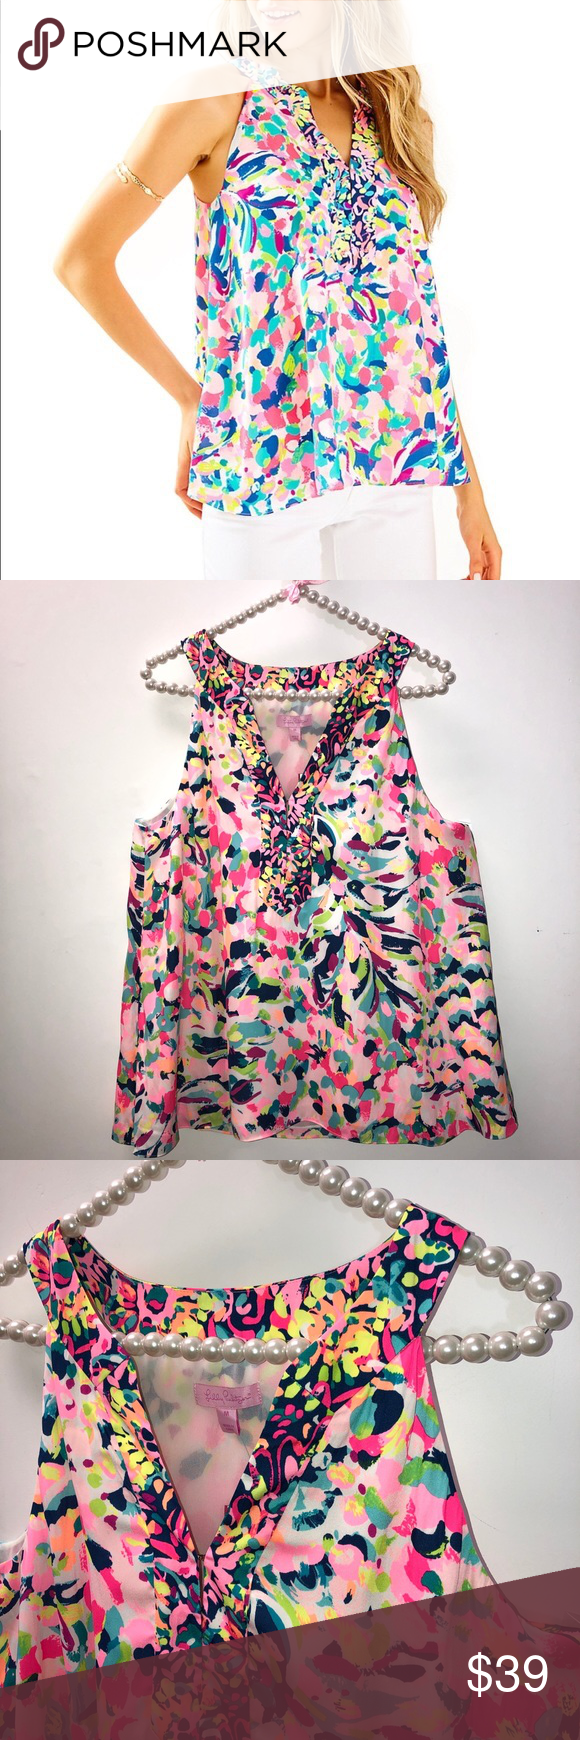 53ad502a8b2031 Lilly Pulitzer Sleeveless Achelle Top M Excellent condition- no signs of  wear. Nice Lilly